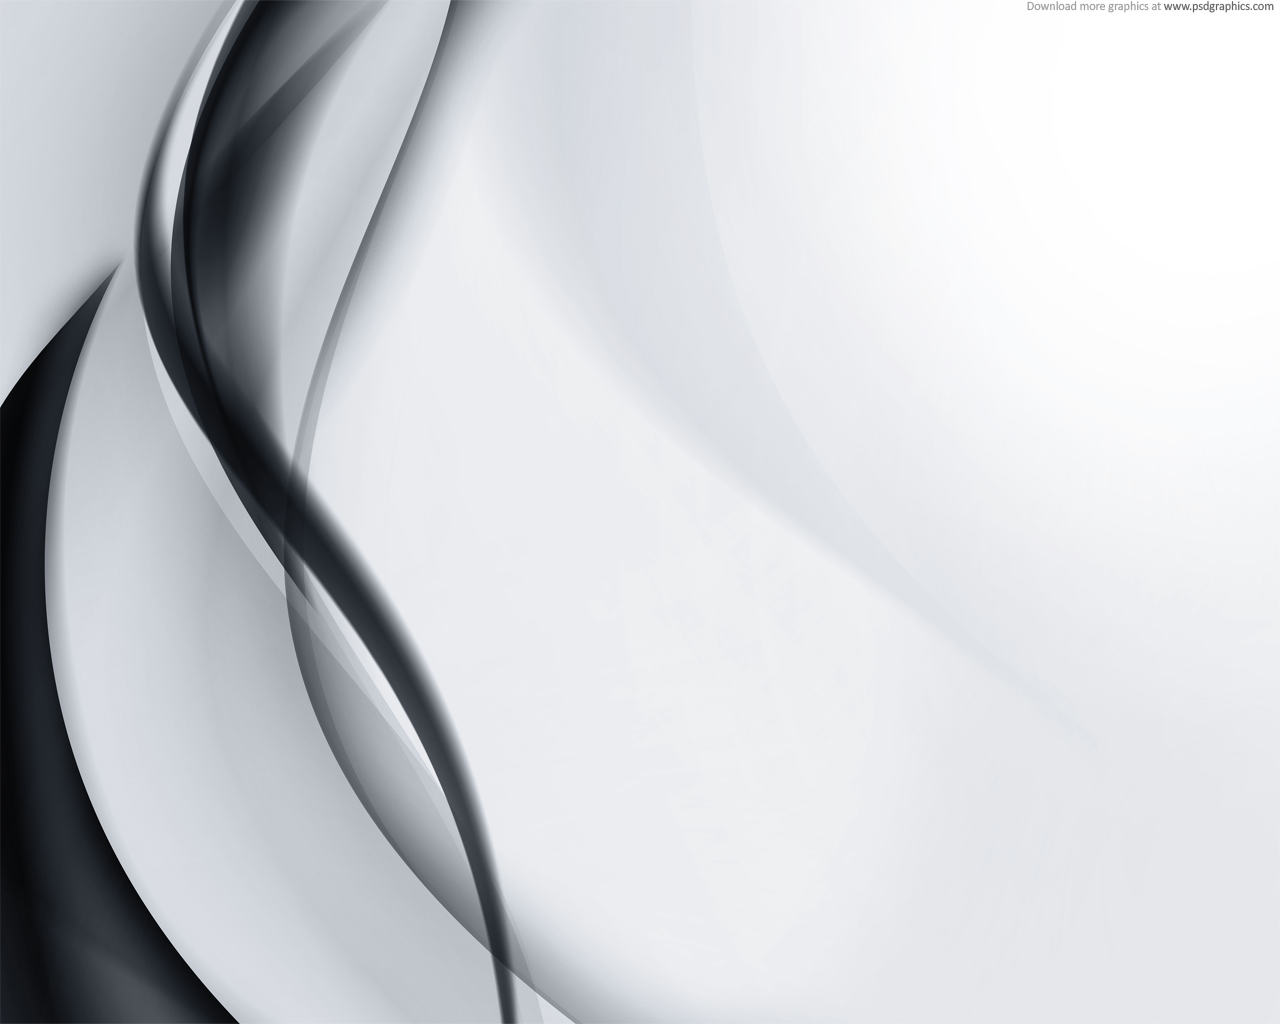 Black and White Abstract Graphics